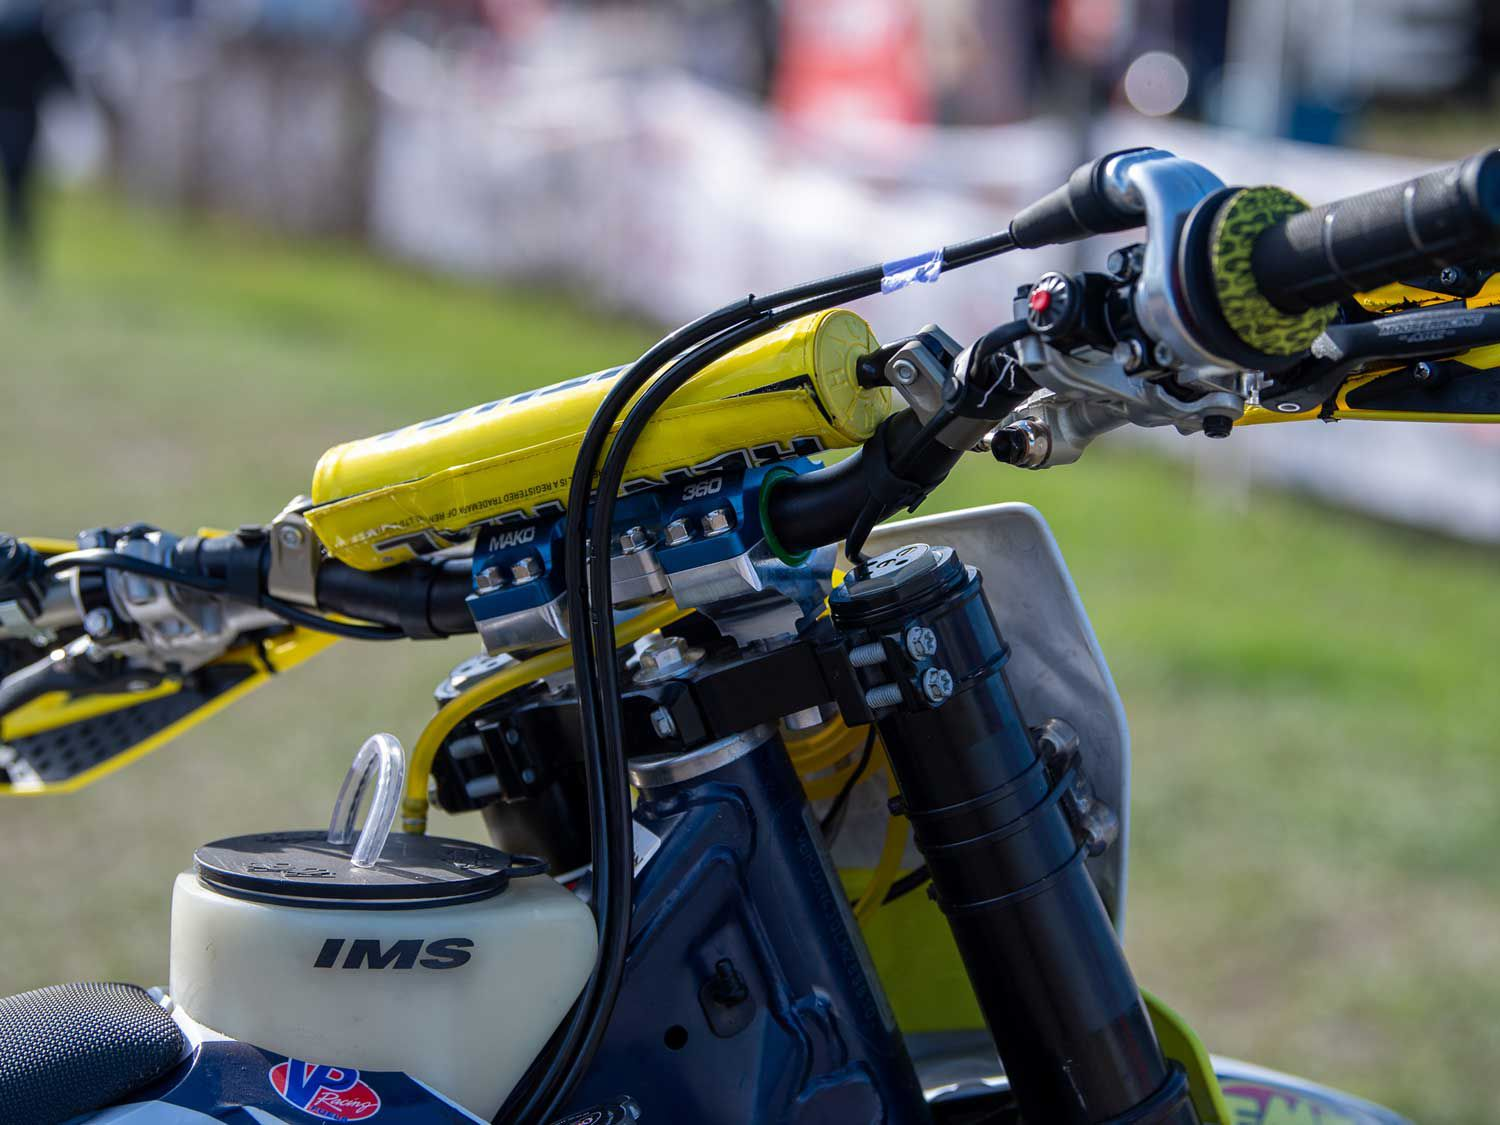 Russell opts for a lower Renthal bar bend combined with XC Gear Mako 360 handlebar mounts.